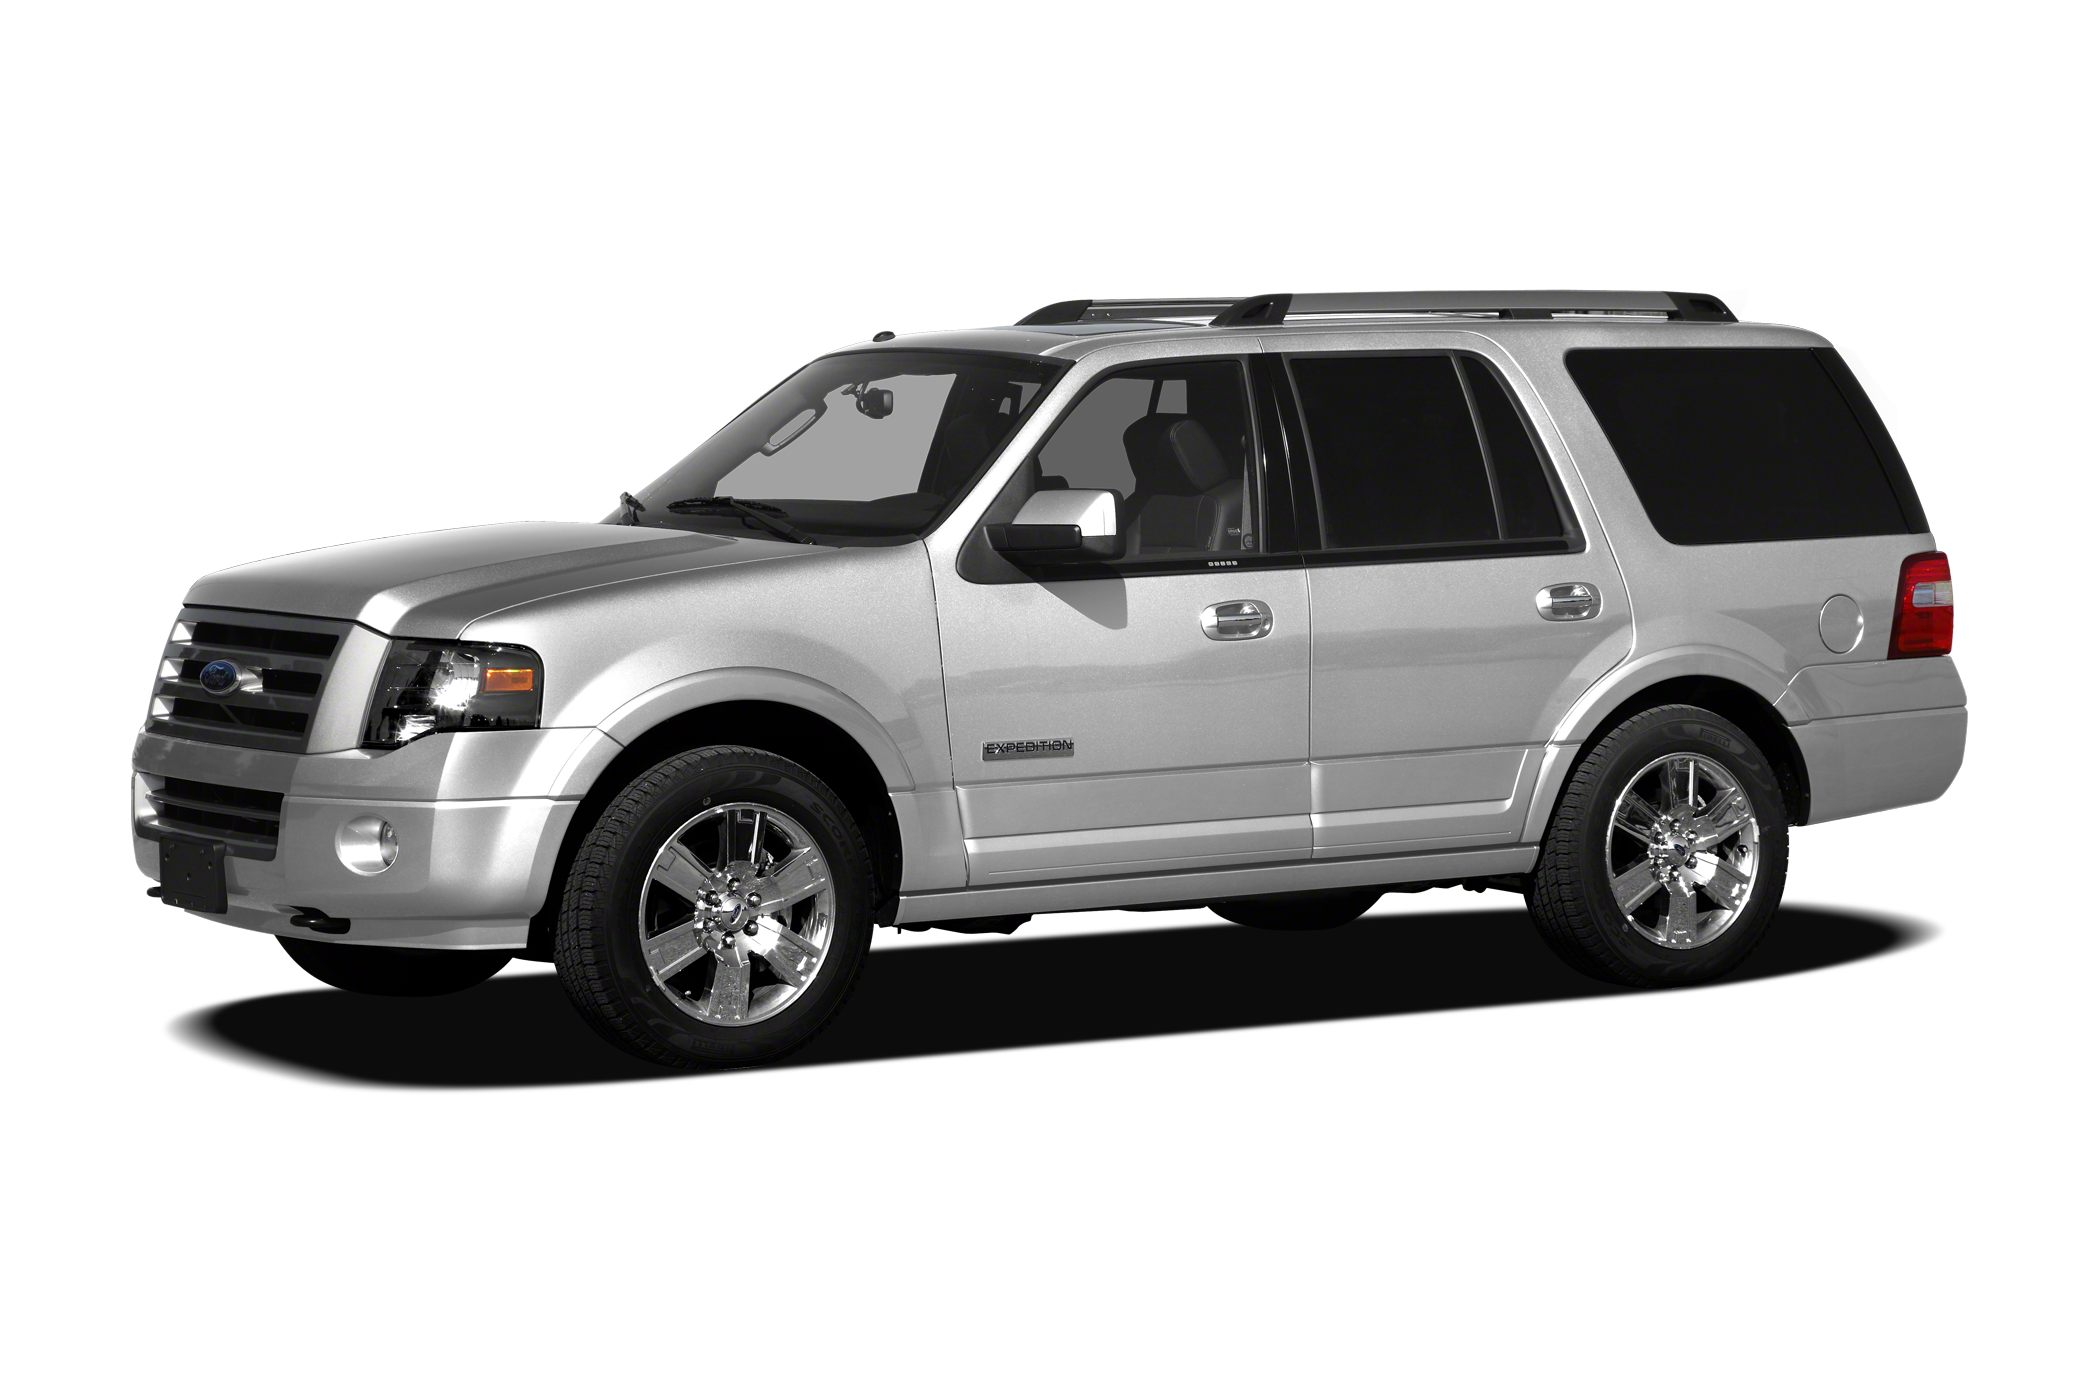 2017 Ford Expedition Recalls